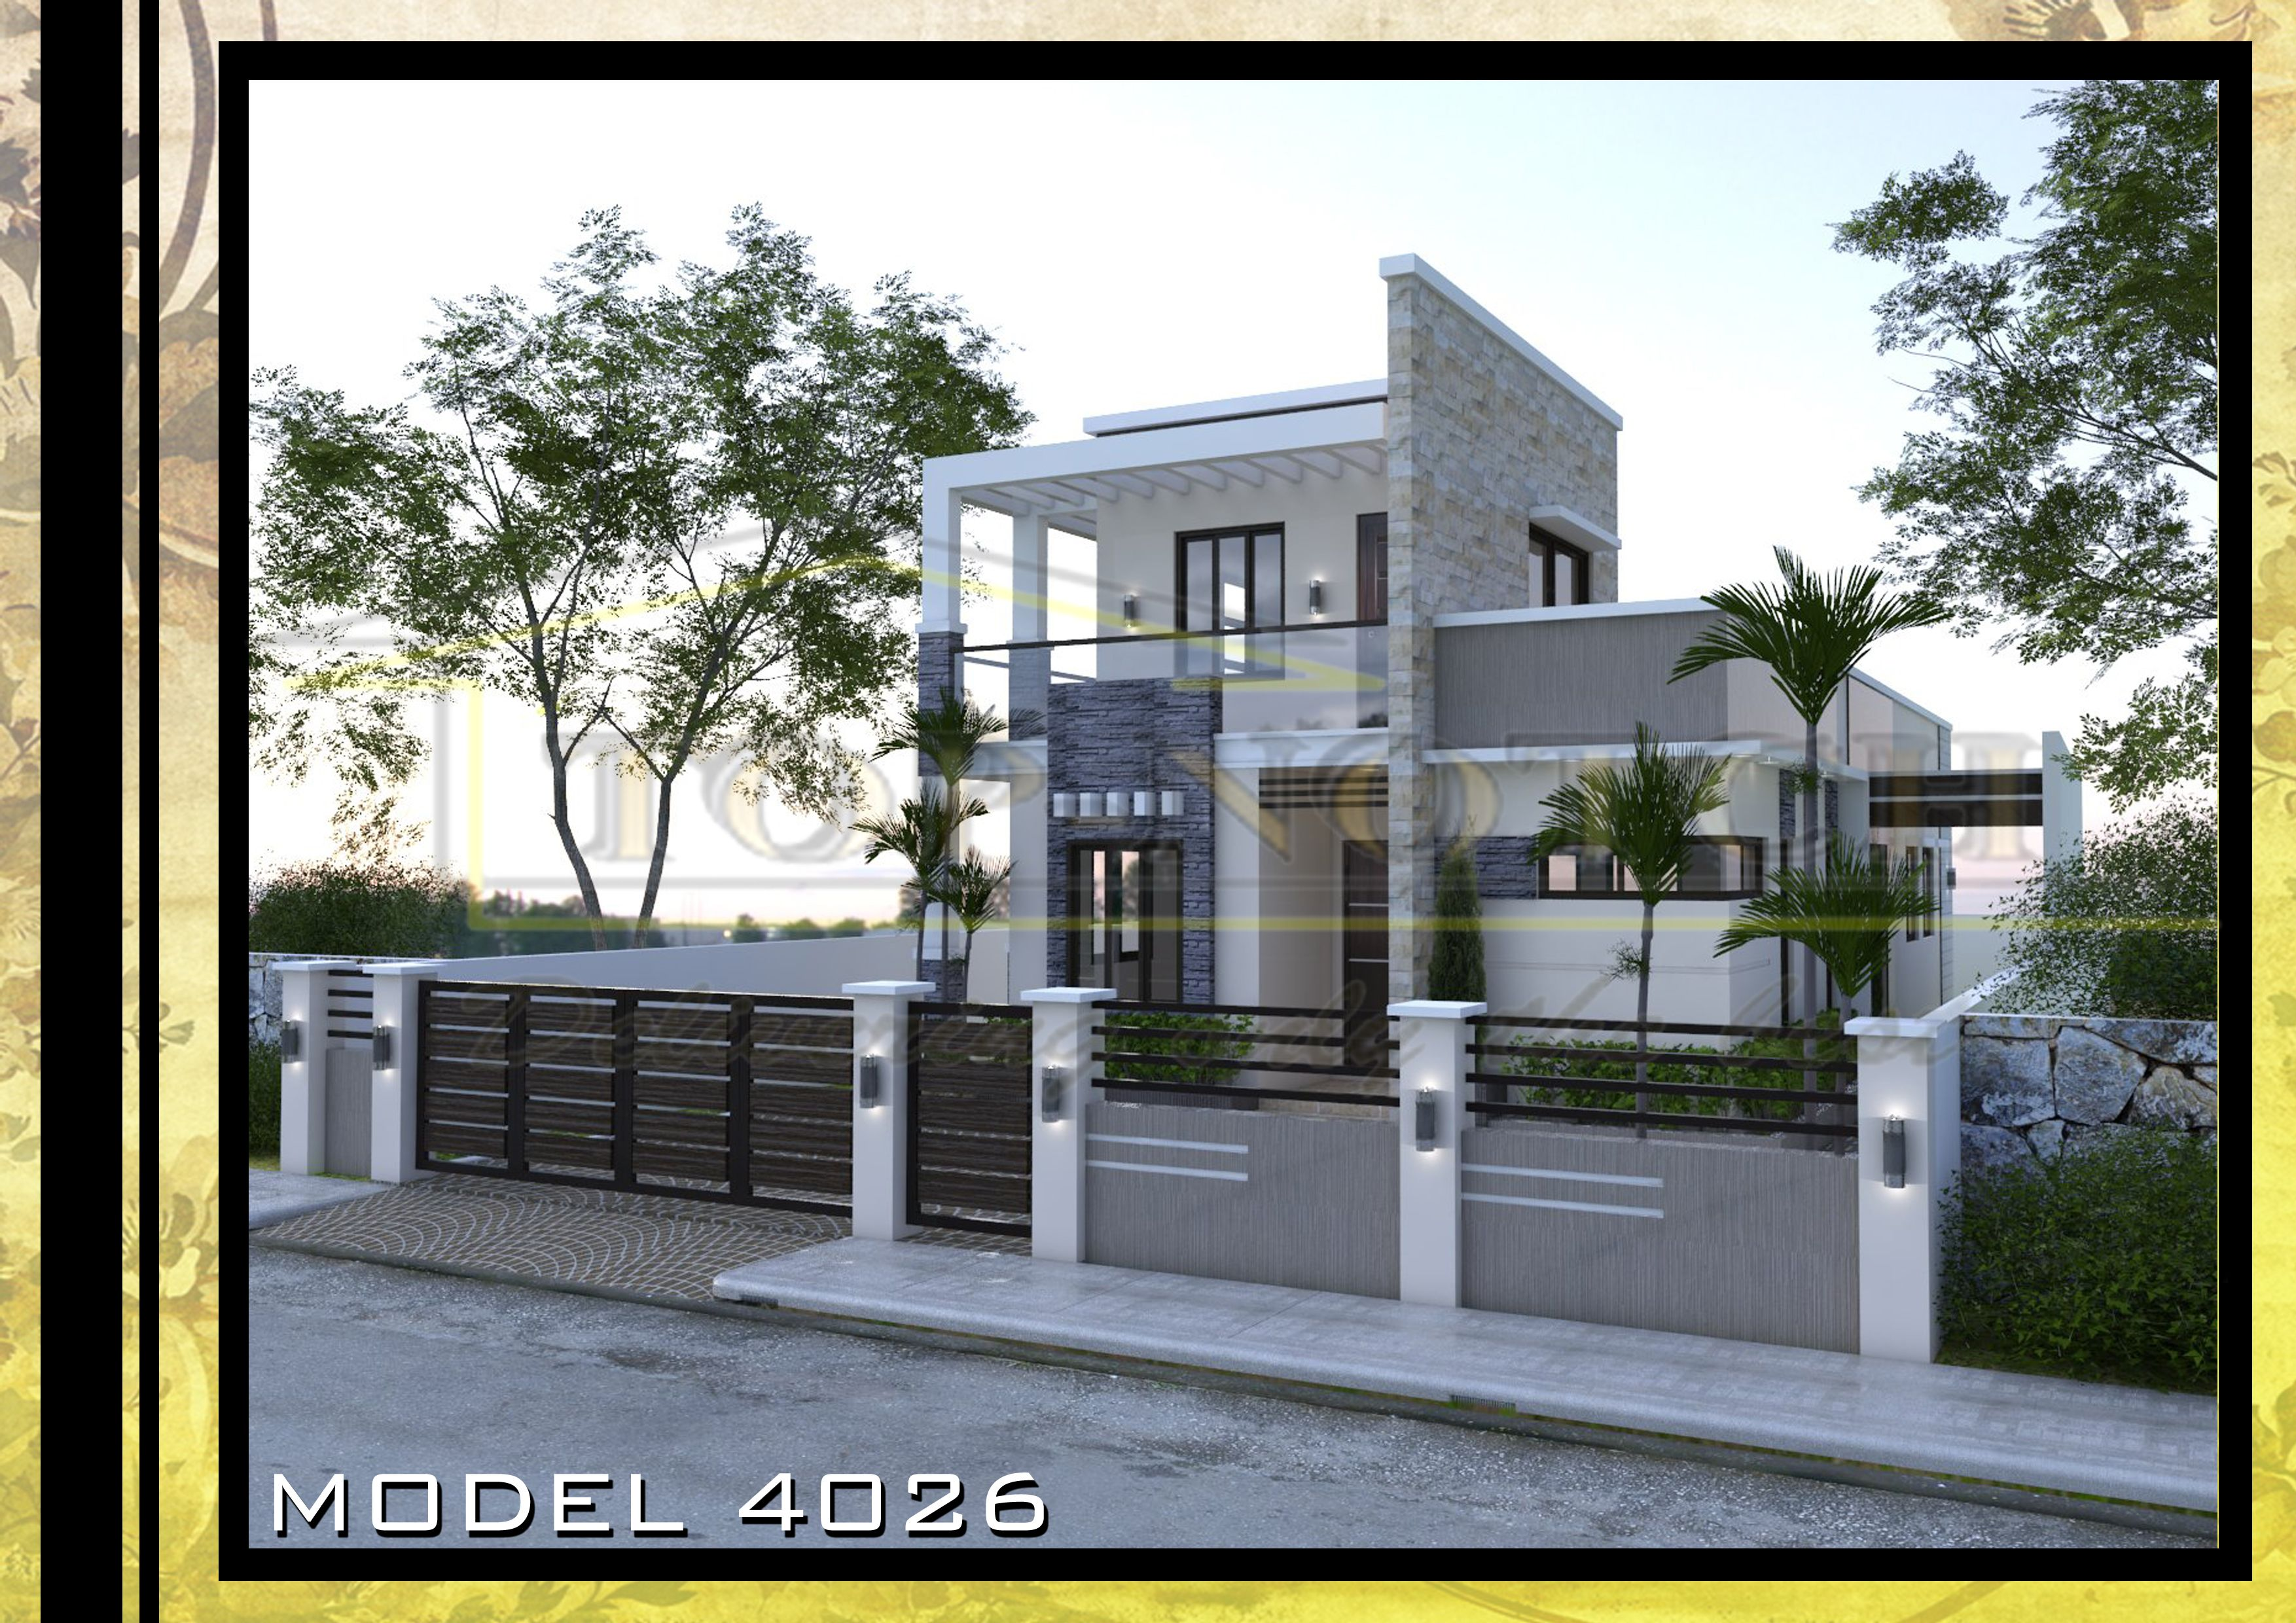 House Plans Philippines Sample House Design Model 4026 In 2020 Philippines House Design House Design Modern Architecture House